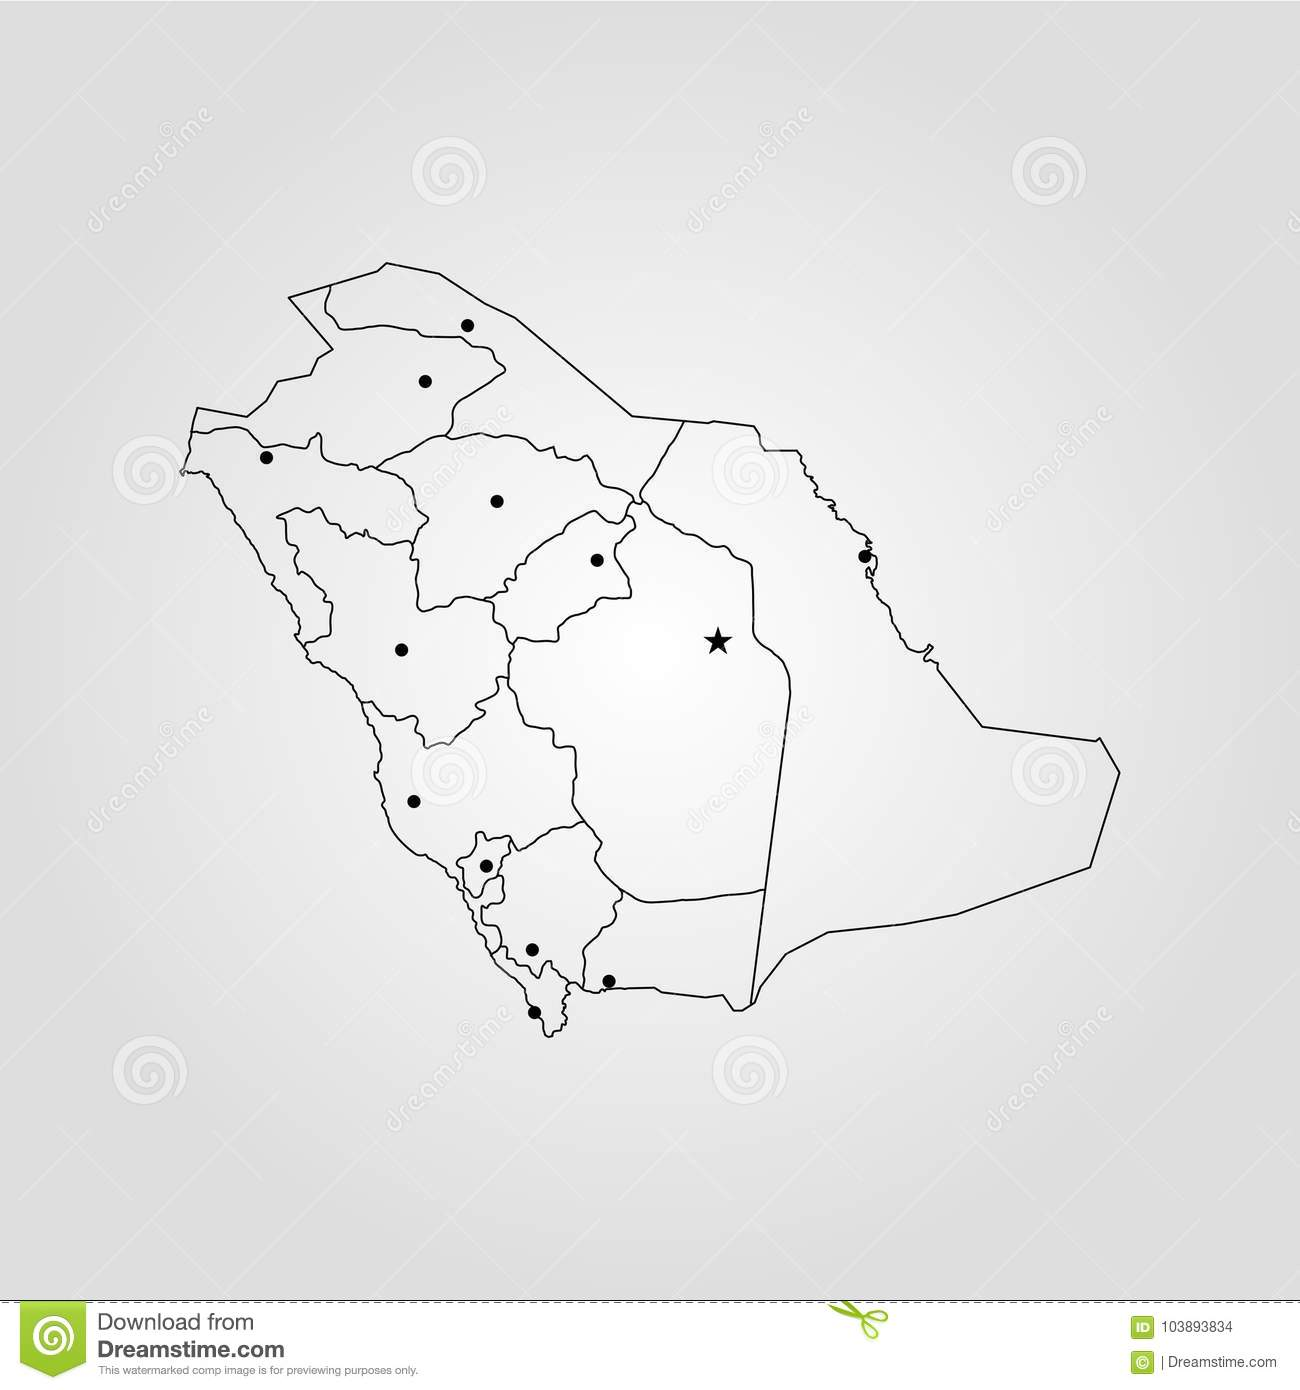 Map of Saudi Arabia stock illustration. Illustration of atlas ...